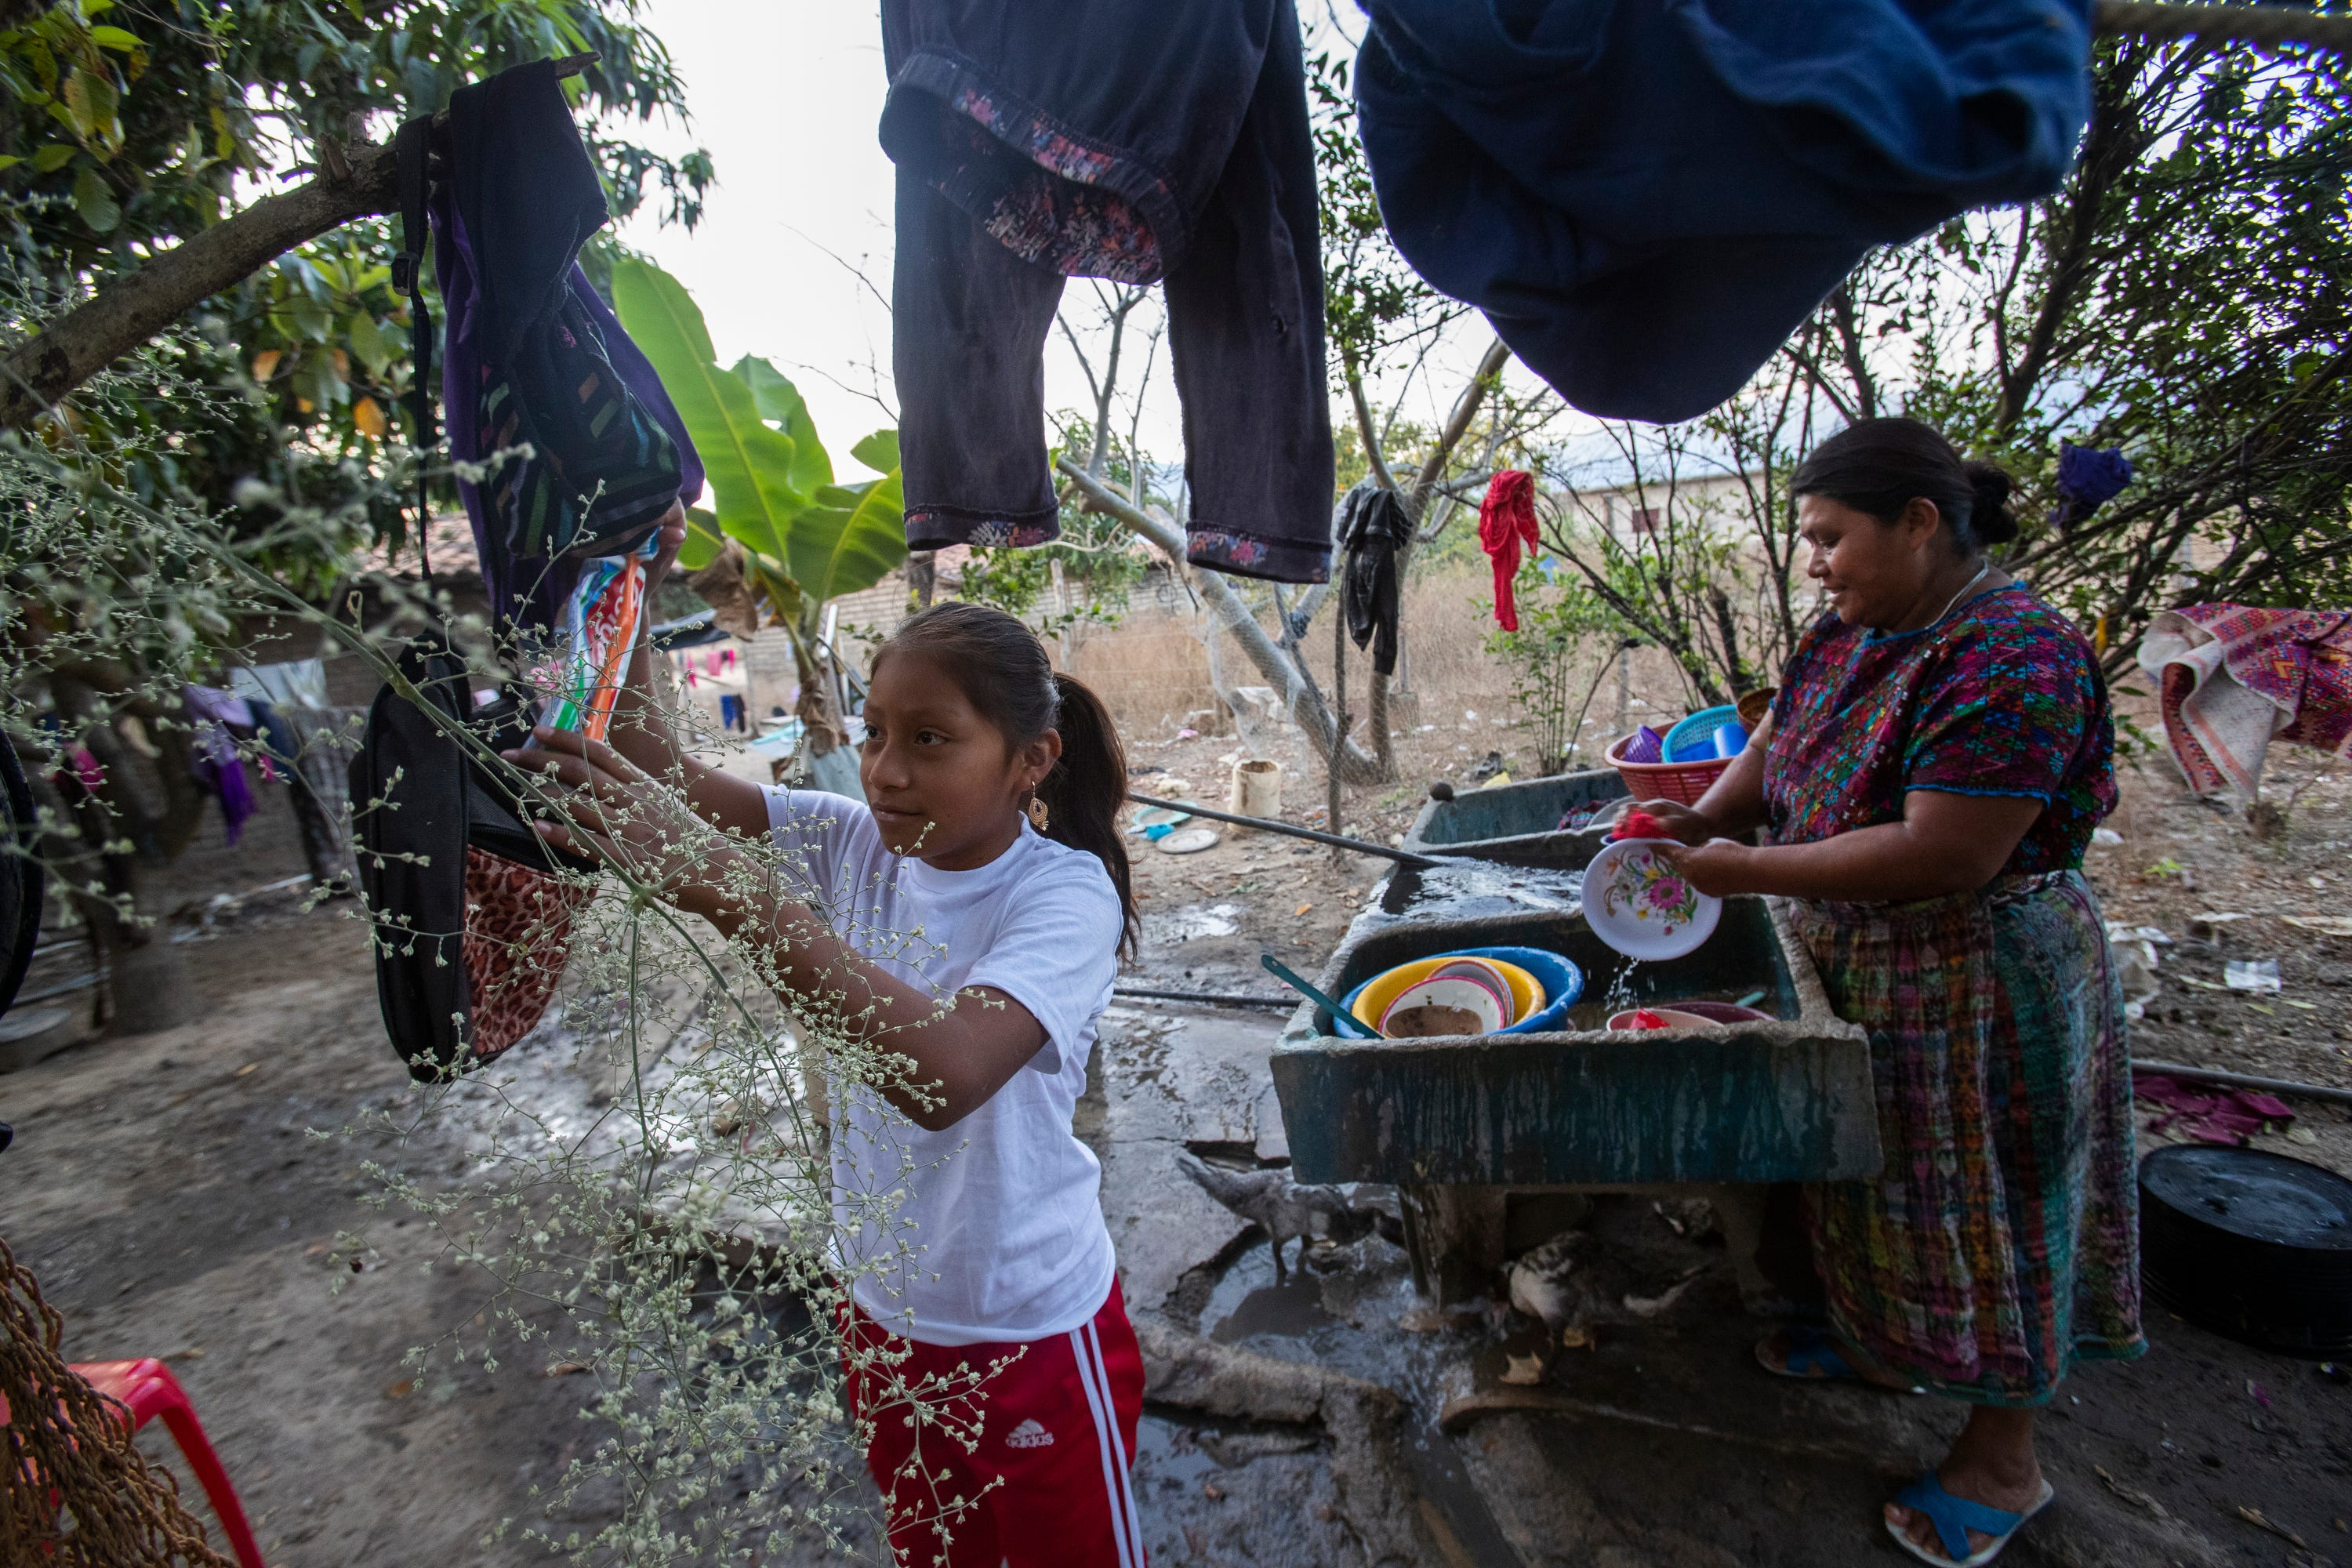 Melissa Sical and her mother, Maria Elvira Ramos, use well water to wash dishes in Baja Verapaz, Guatemala, in early March. Melissa and her father traveled to the U.S. border during the summer of 2019, where they were subjected to the Migrant Protection Protocols and required to wait in Juárez two months for a U.S. court hearing.